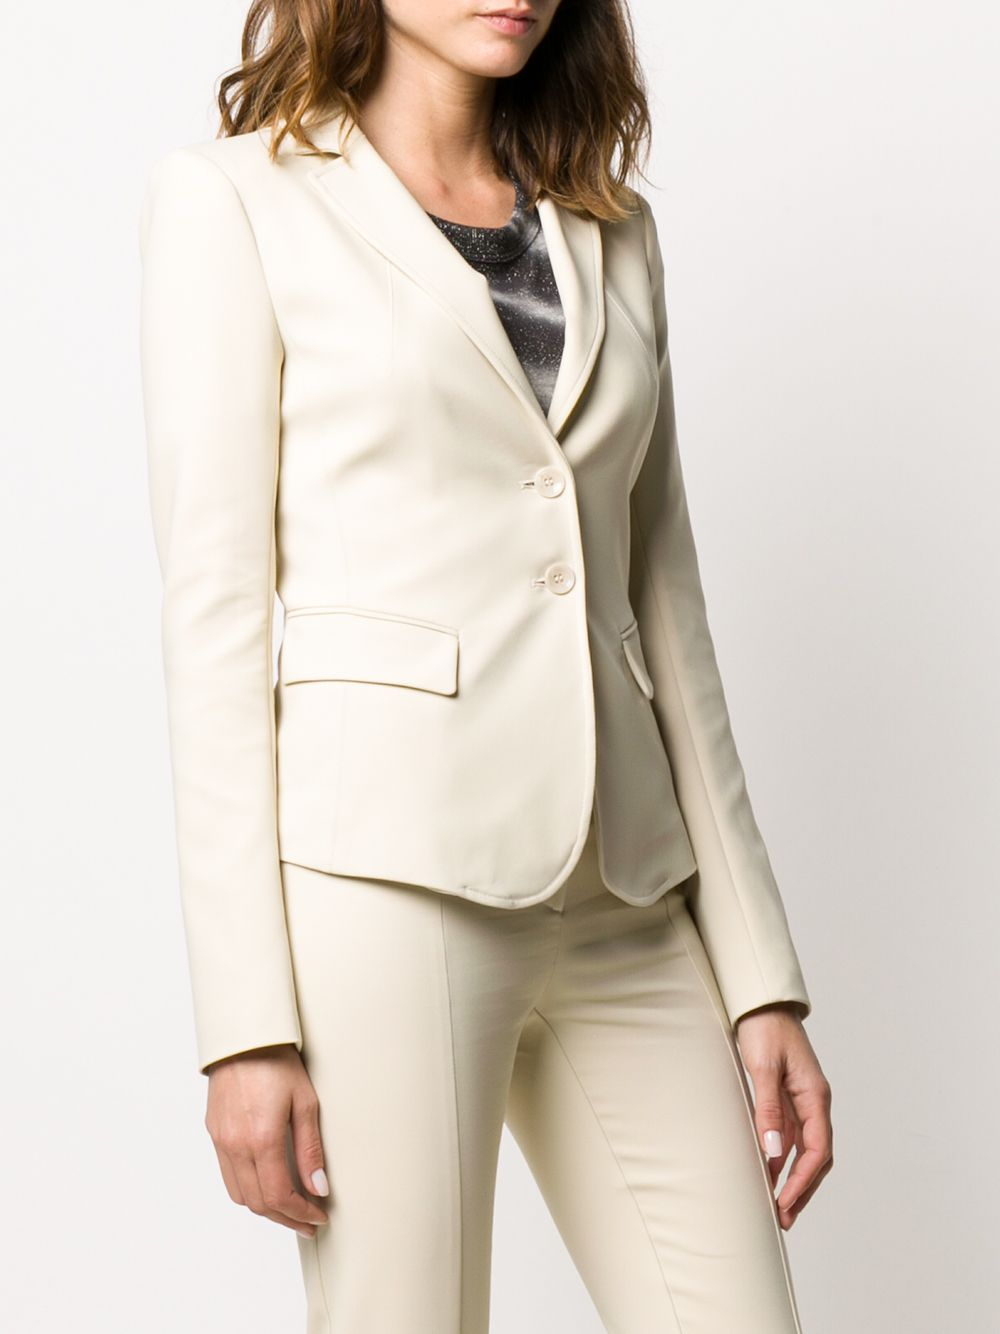 Picture of Patrizia Pepe | Giacca/Jacket